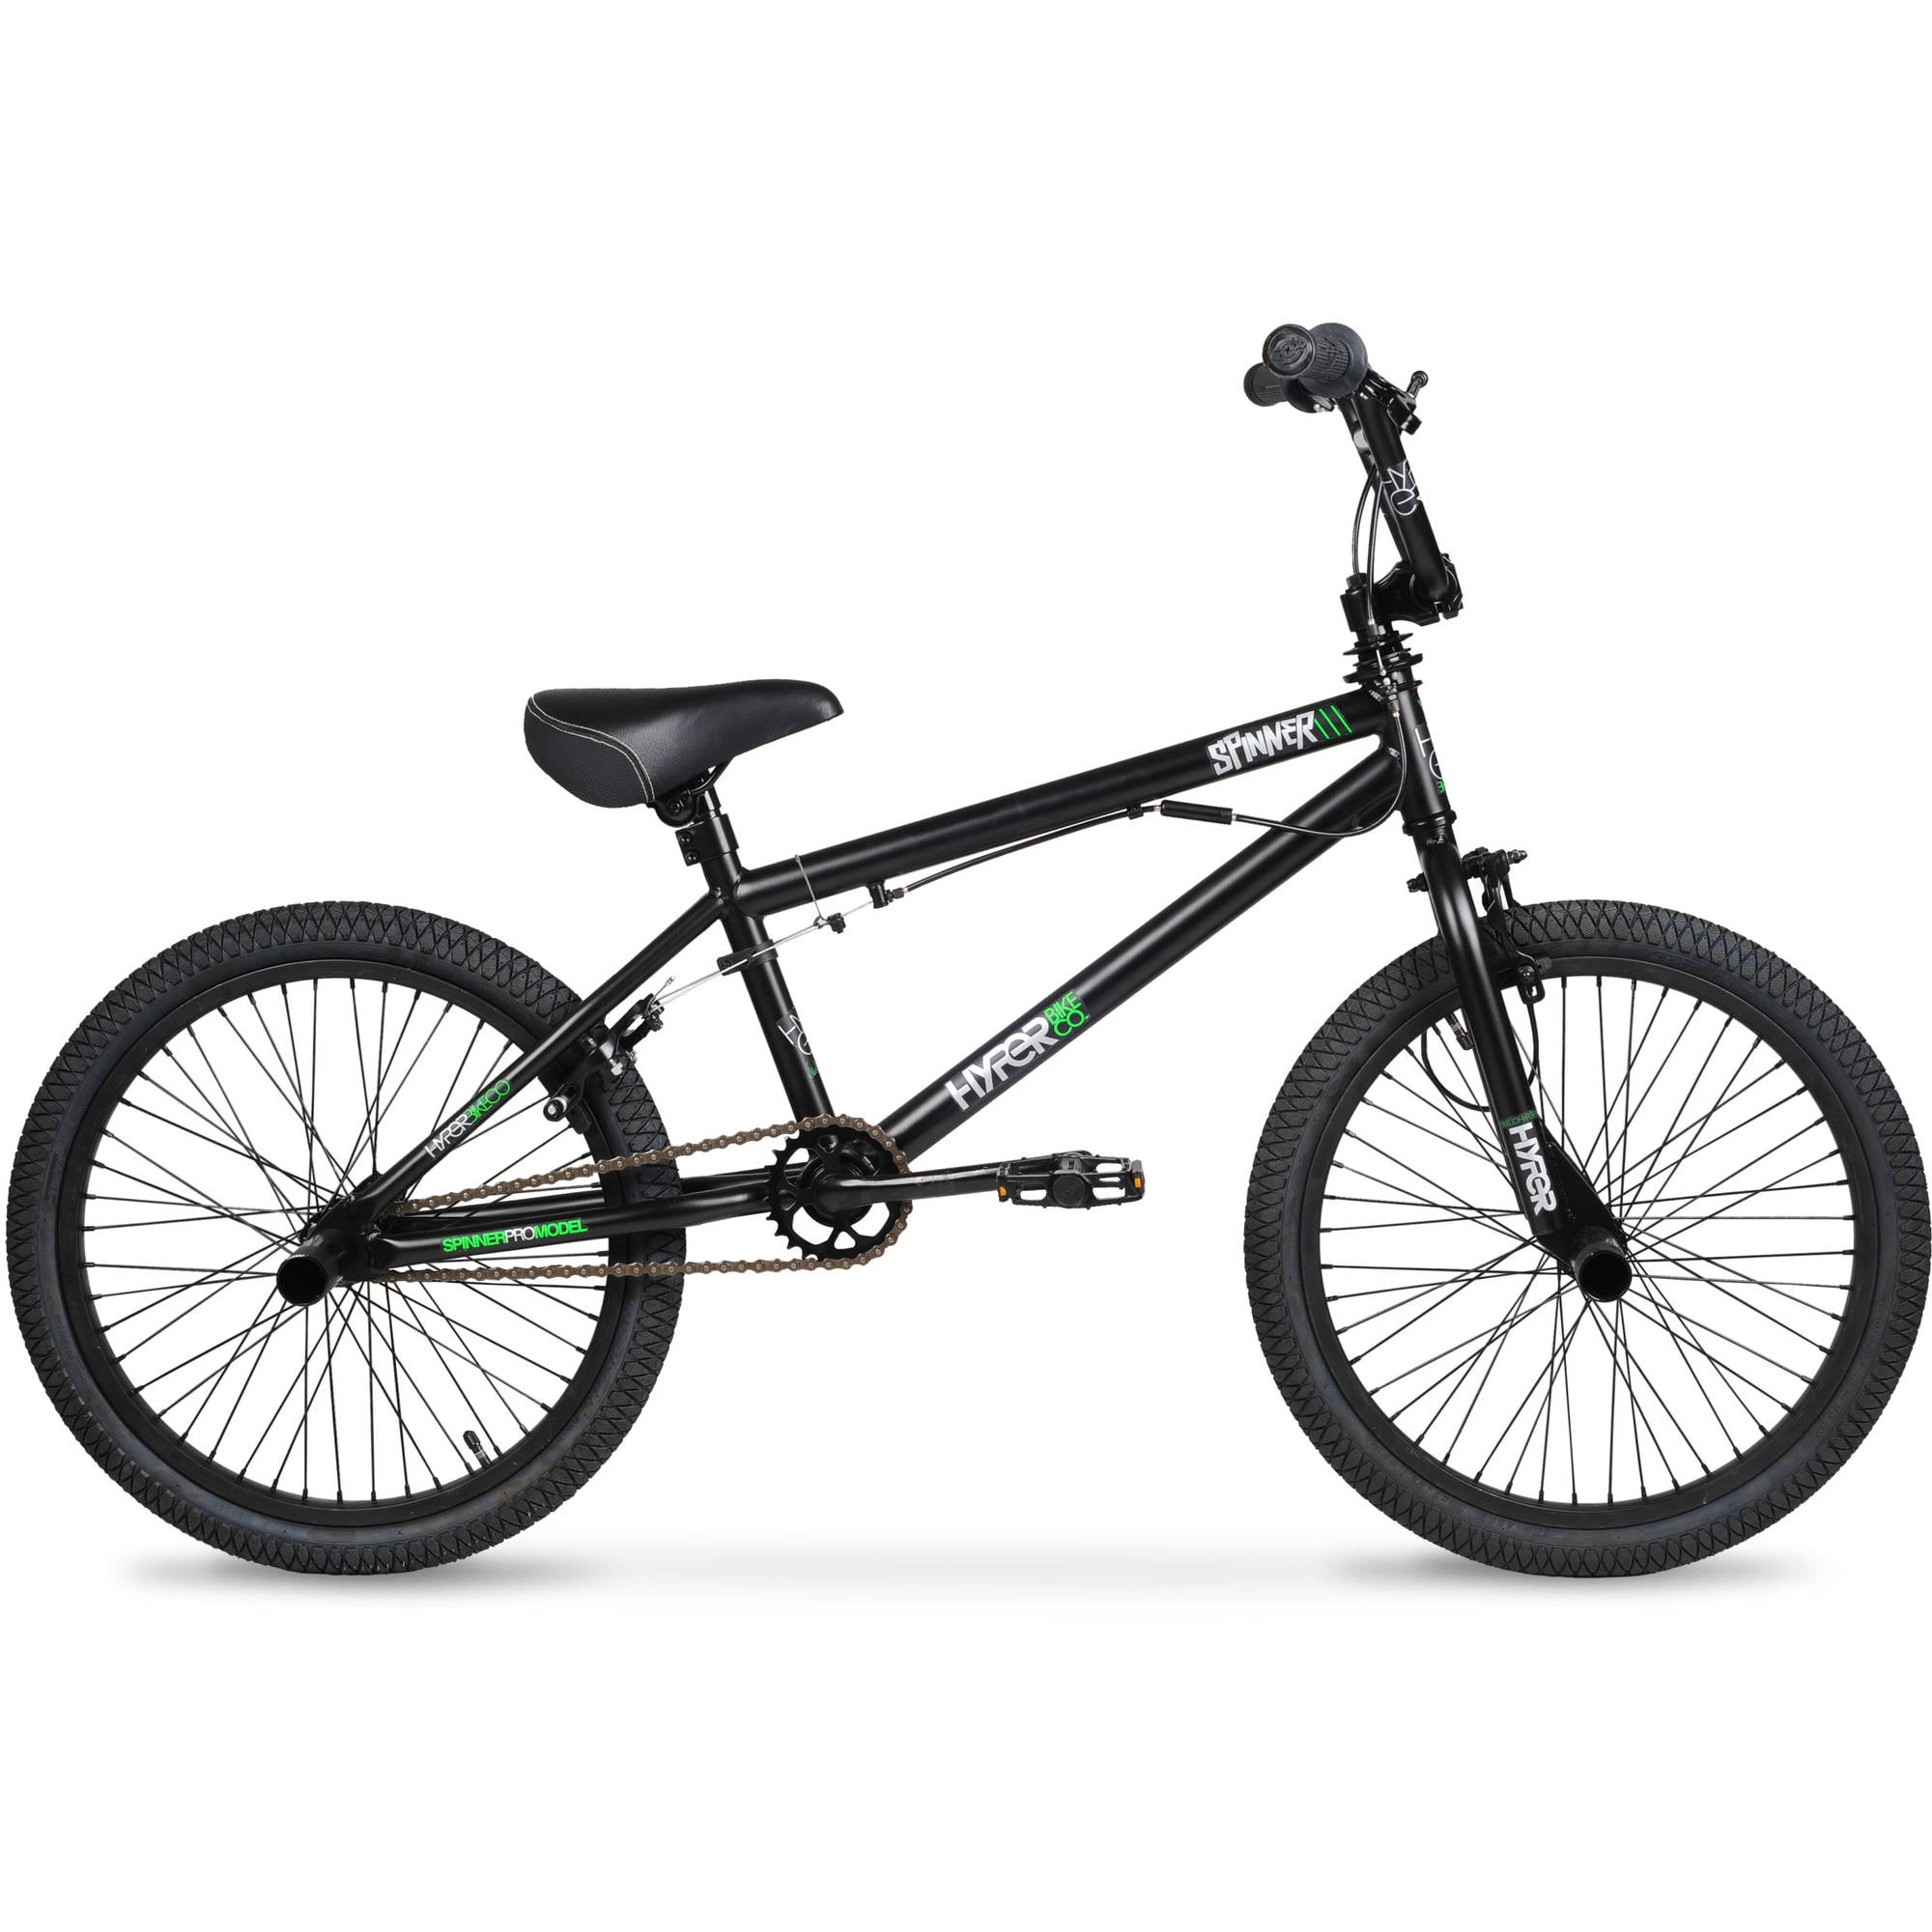 "20"" Hyper Spinner Pro Boys' BMX Bike, Black Green by Ballard Pacific Resources"